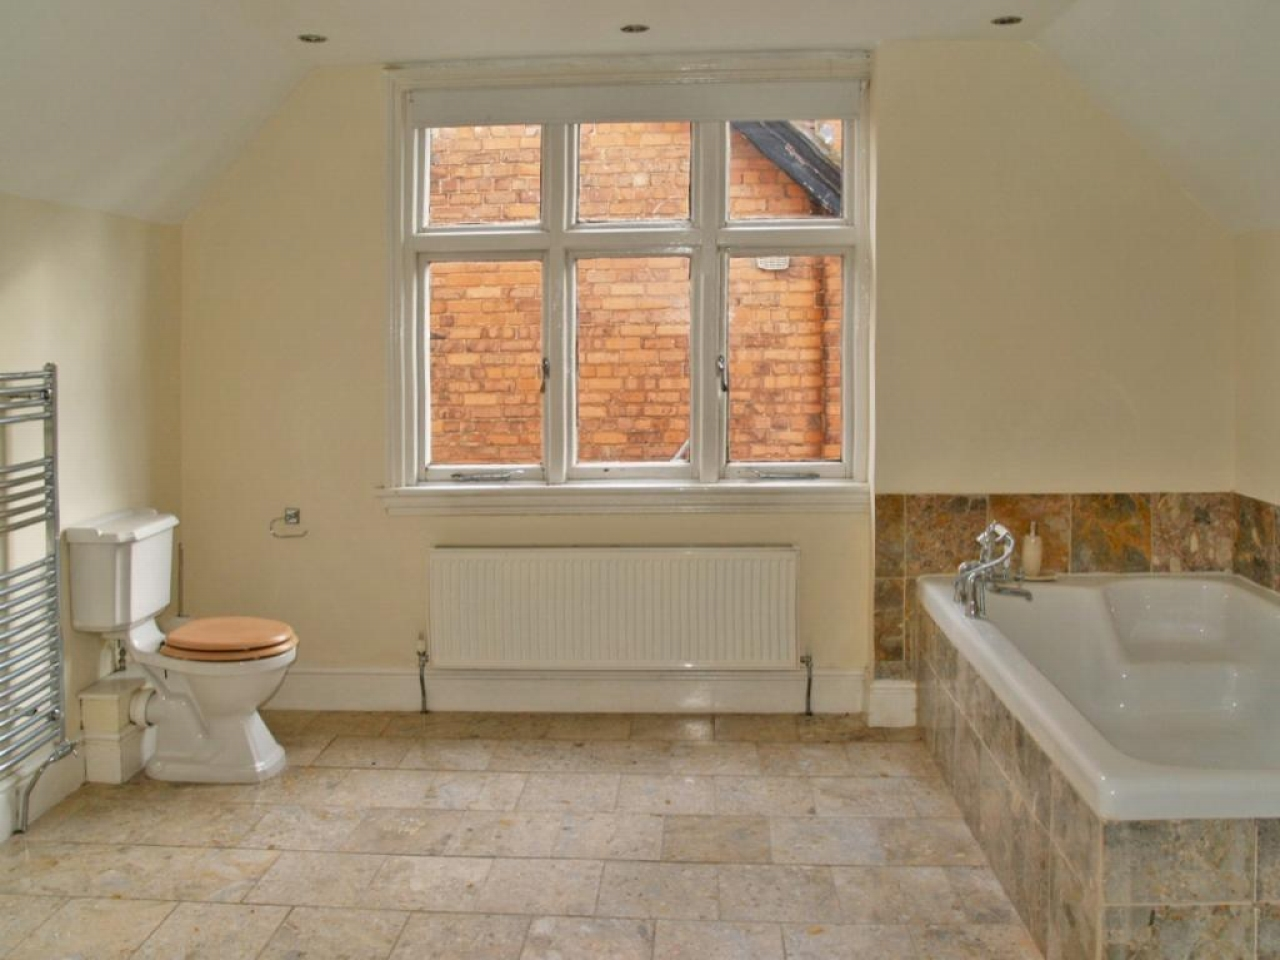 5 bedroom detached house SSTC in Solihull - photograph 15.